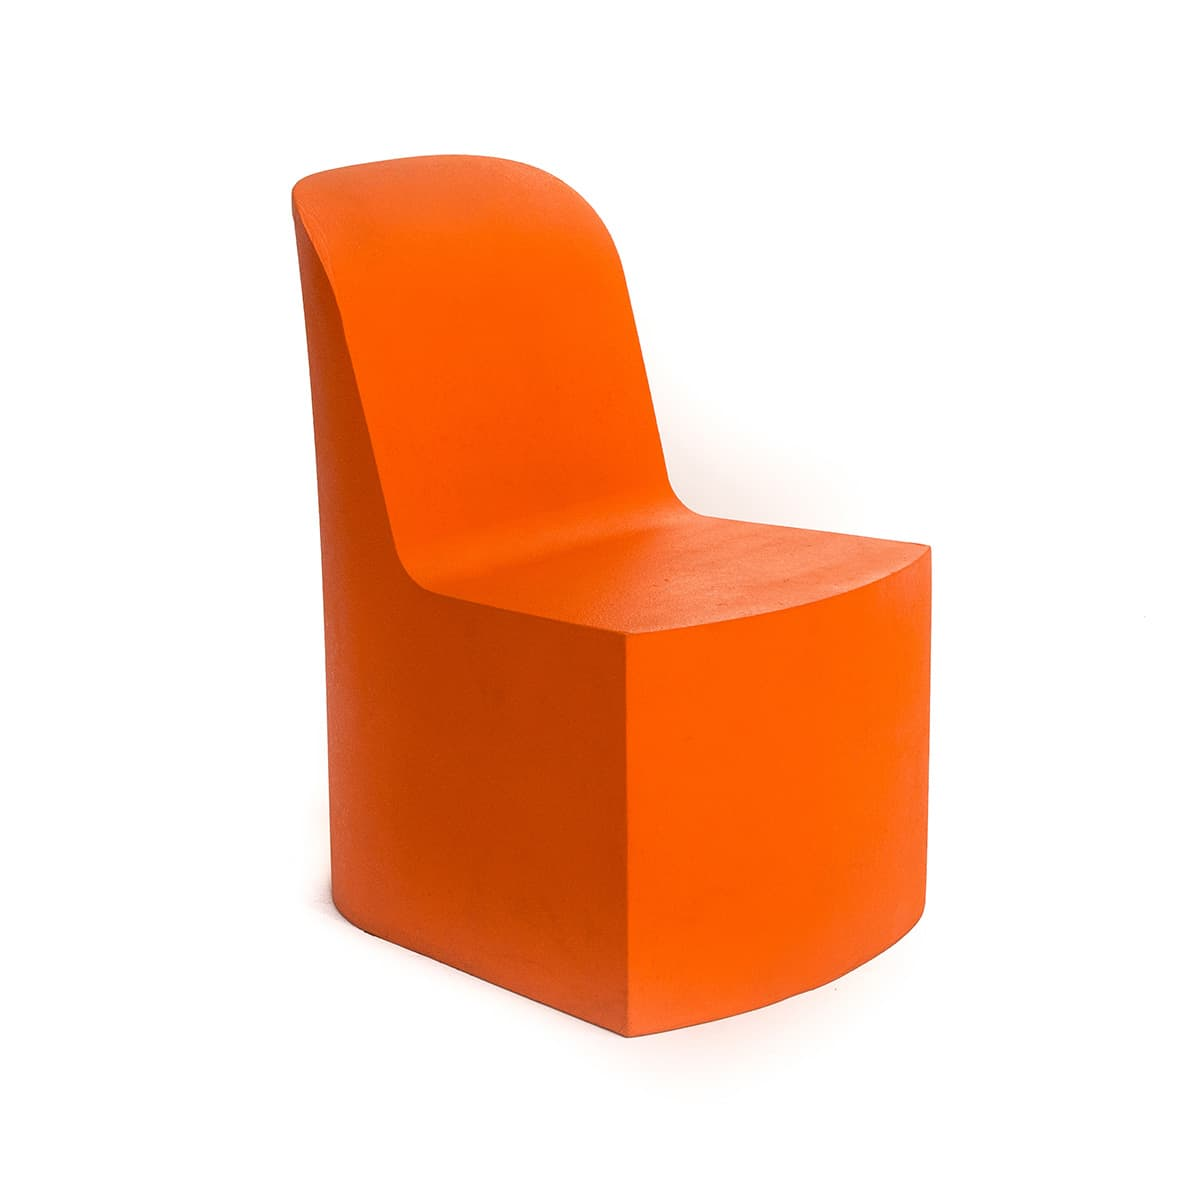 _0010_Block_Sculpt-chair_orange__isolated